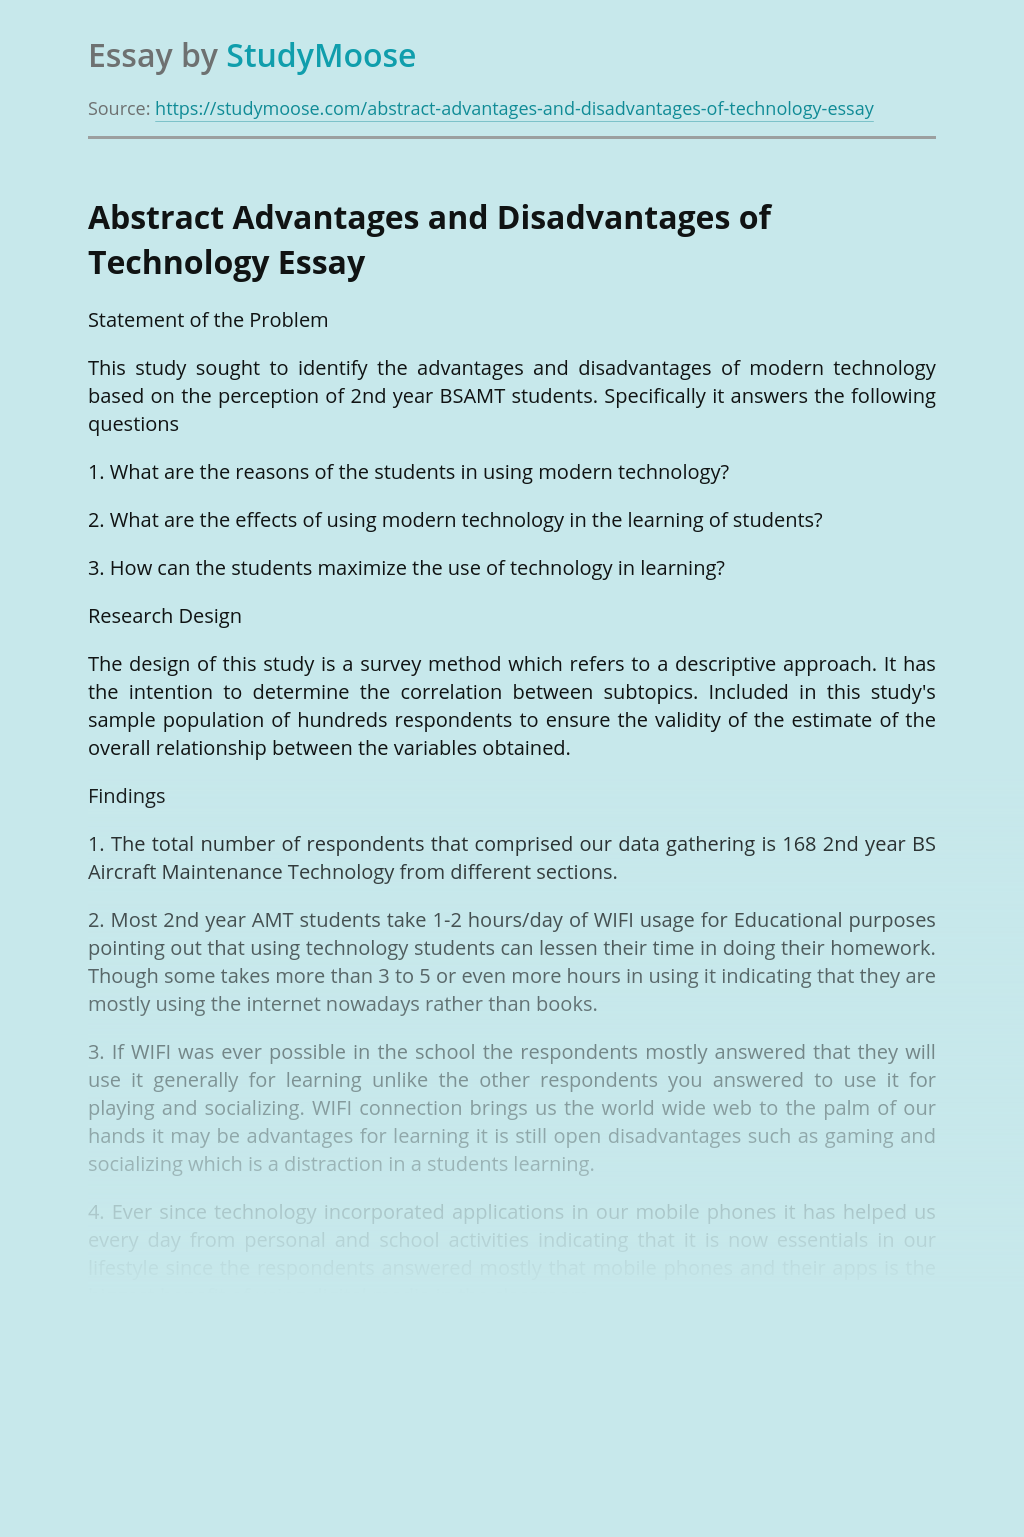 Abstract Advantages and Disadvantages of Technology